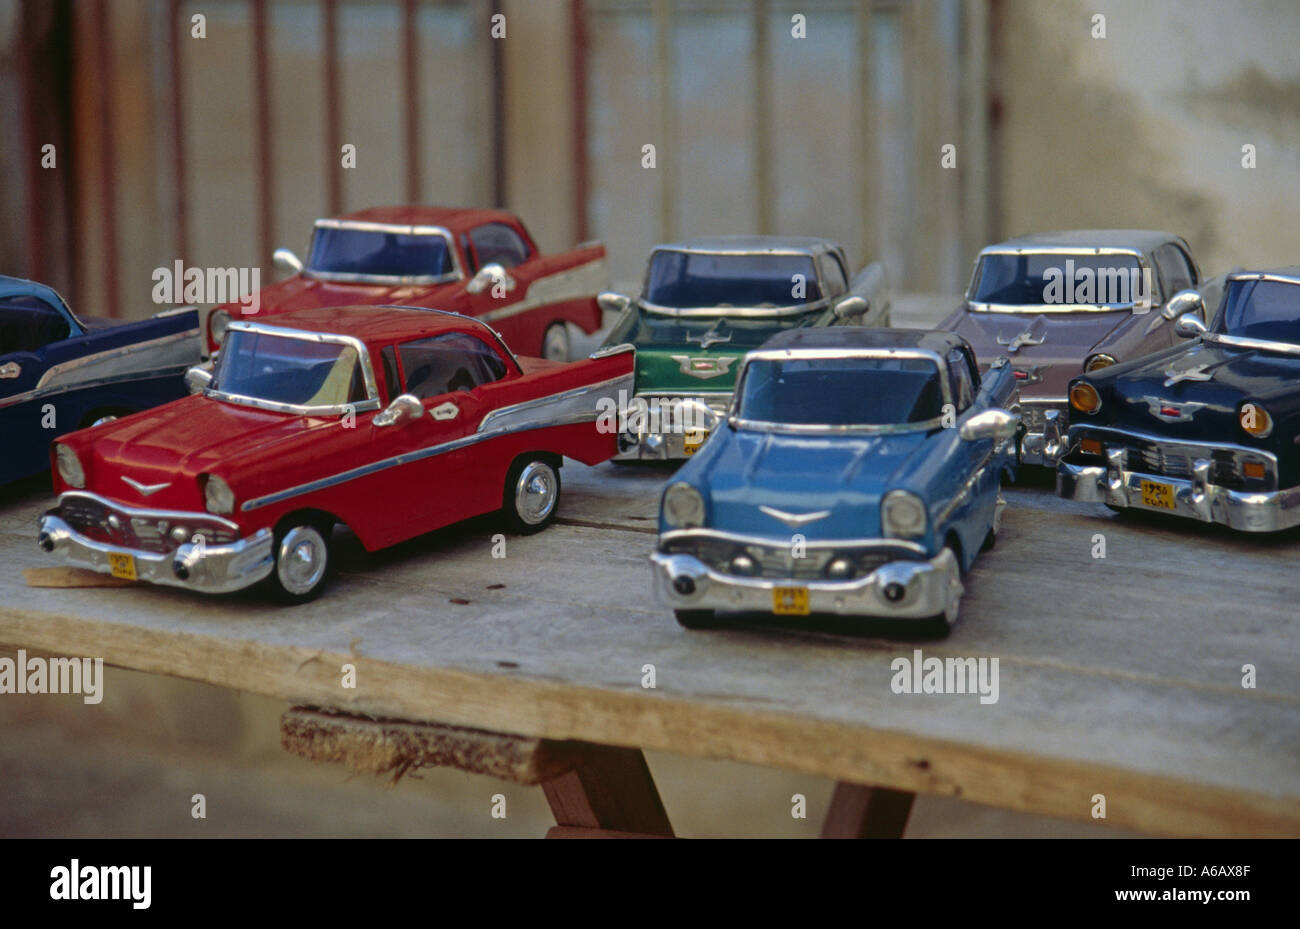 toy cars for sale at a market in trinidad cuba stock photo royalty free image 3760782 alamy. Black Bedroom Furniture Sets. Home Design Ideas